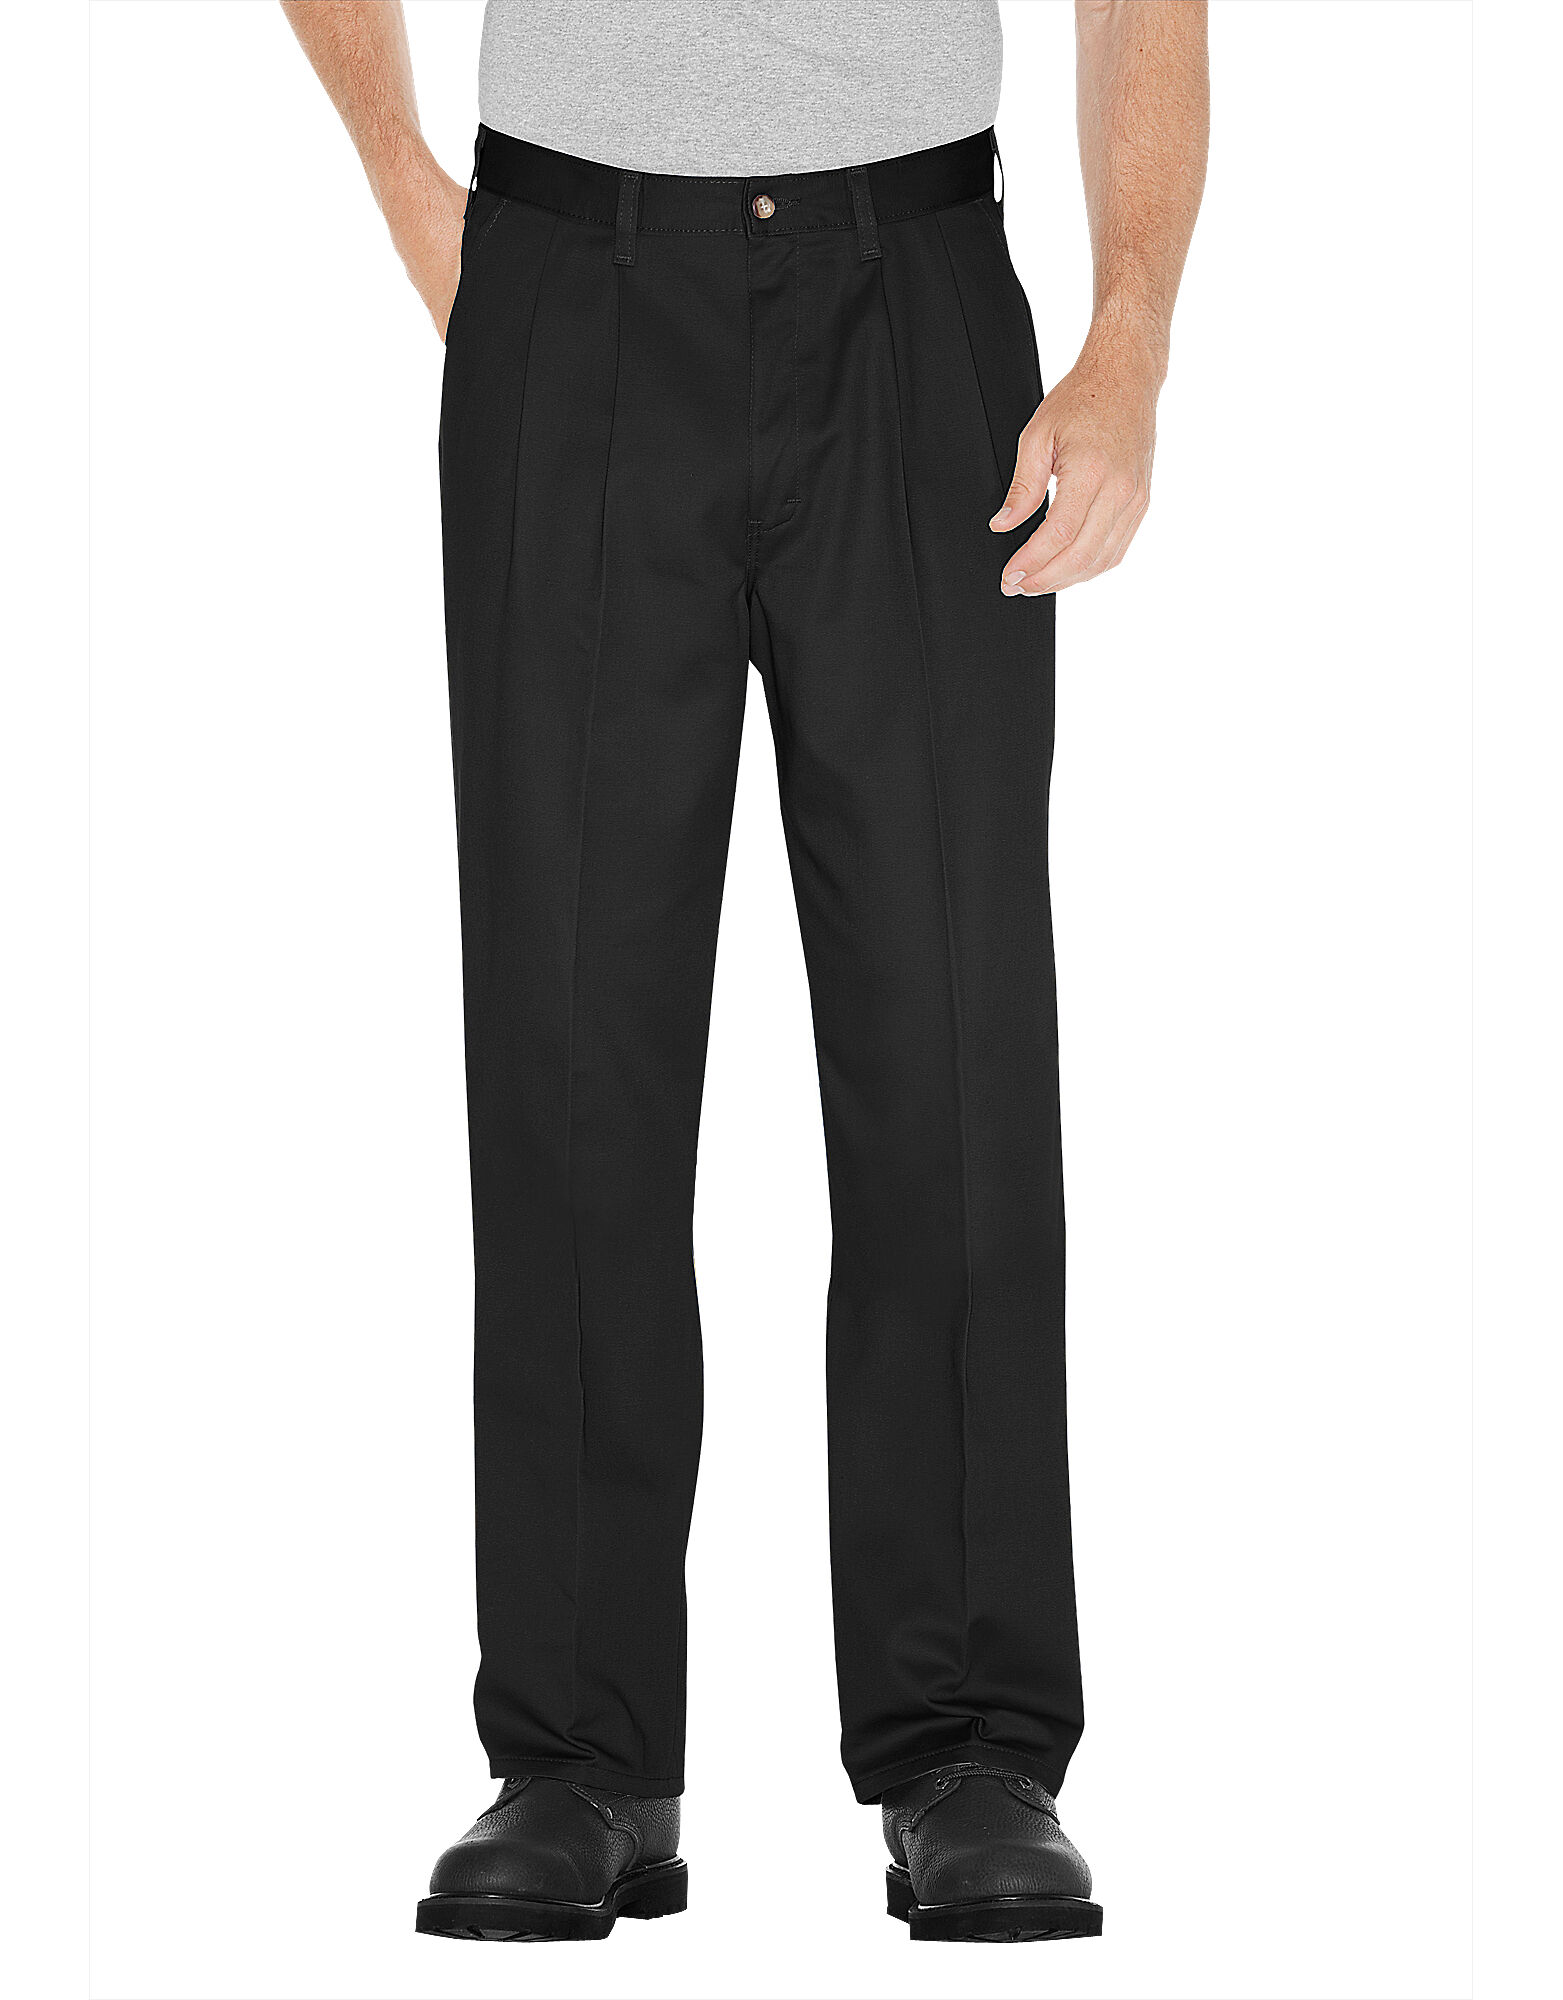 Find great deals on eBay for pleated work pants. Shop with confidence.